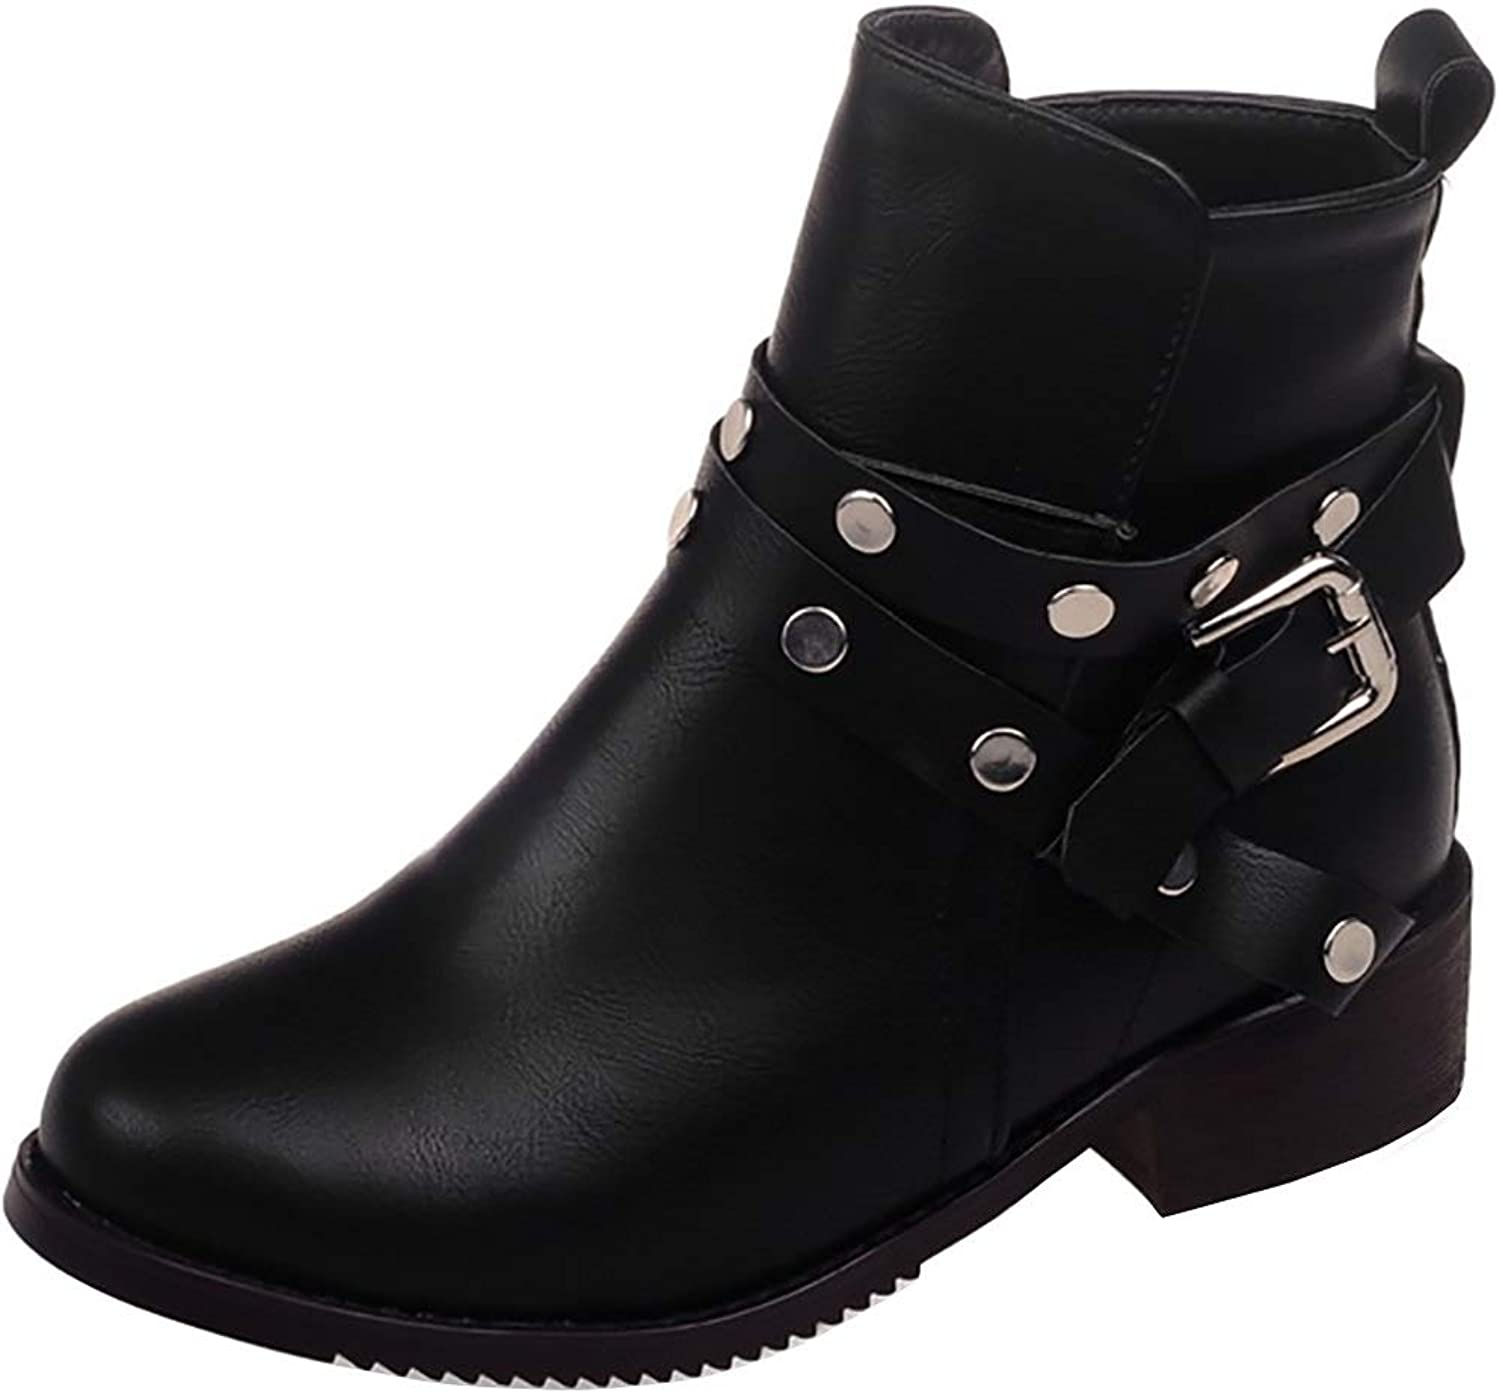 MAYPIE Women's Fashion High Top Round Toe Studded Buckle Block Heel Boots